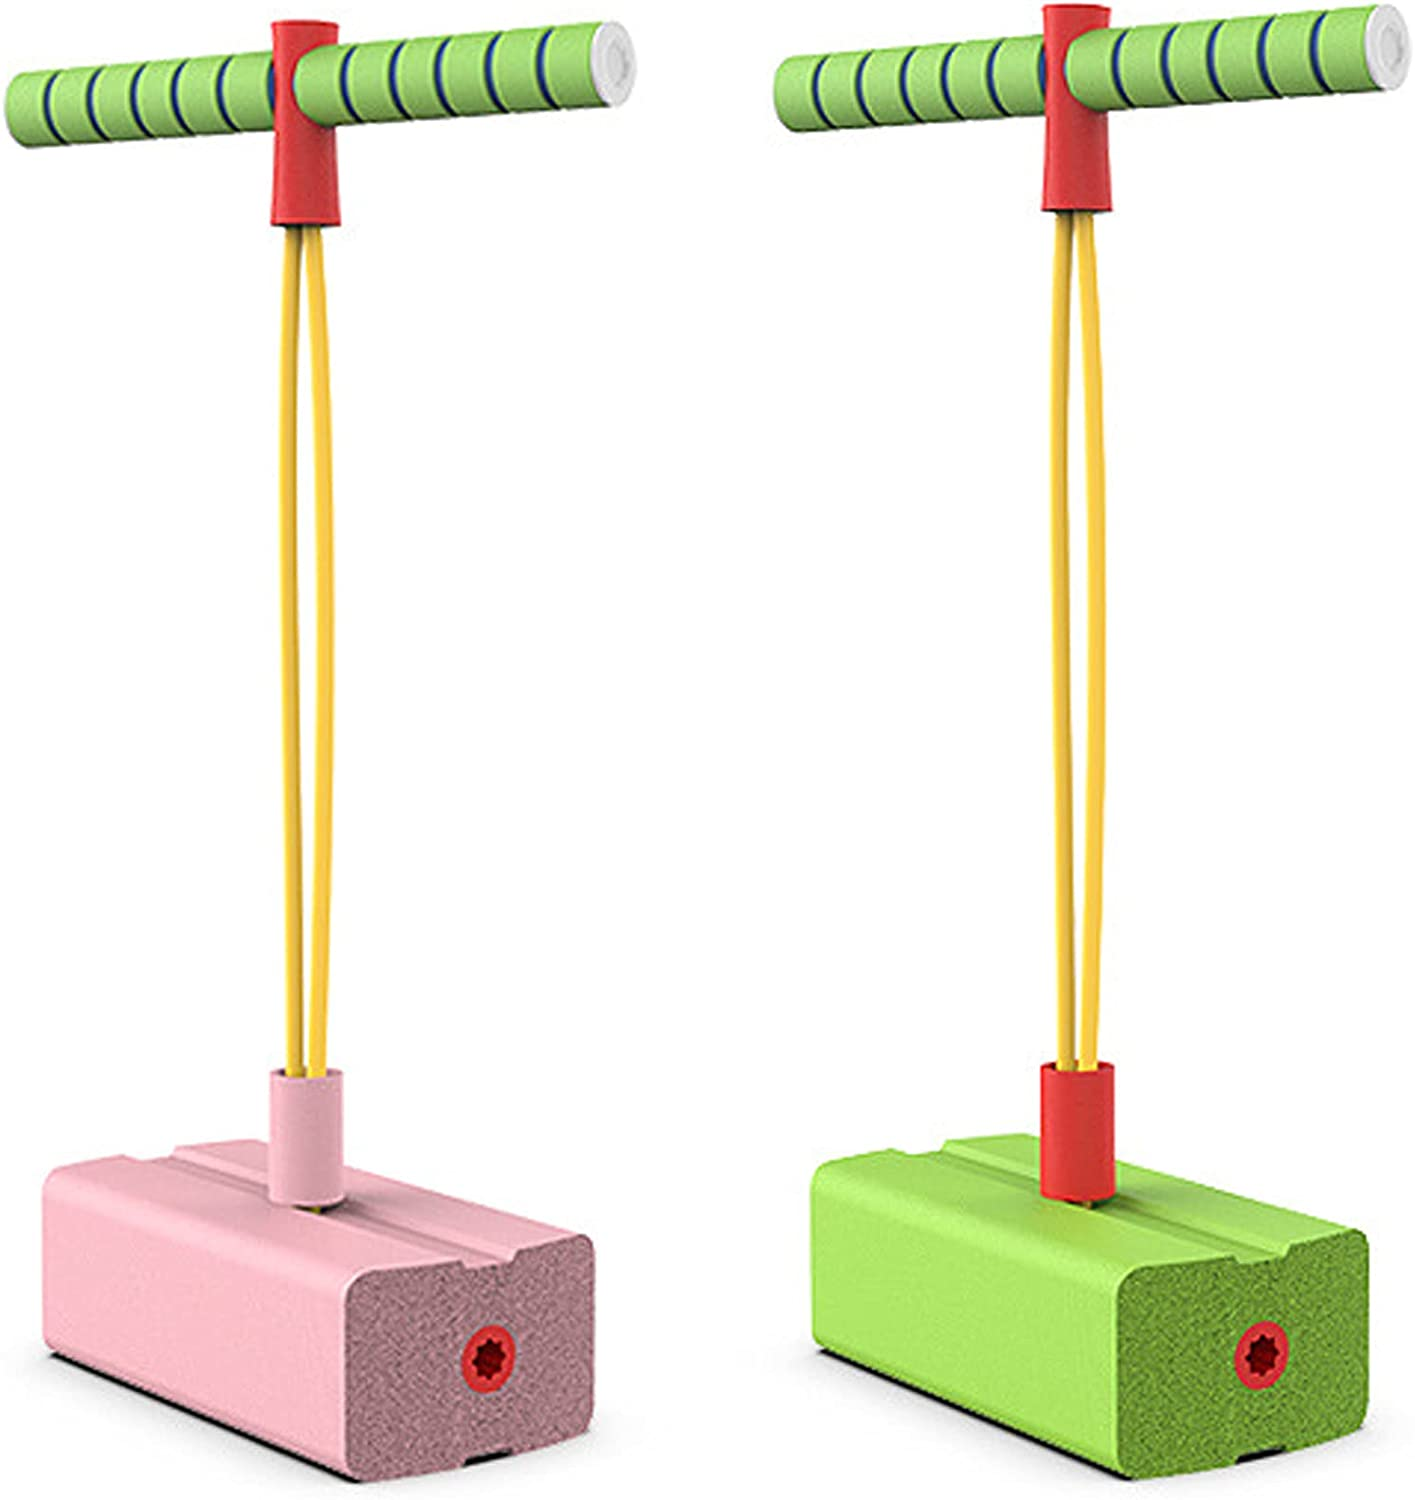 Toy Foam Pogo Jumper Japan's largest assortment Stick Jumping Max 85% OFF Pole Easy to Sa Carry